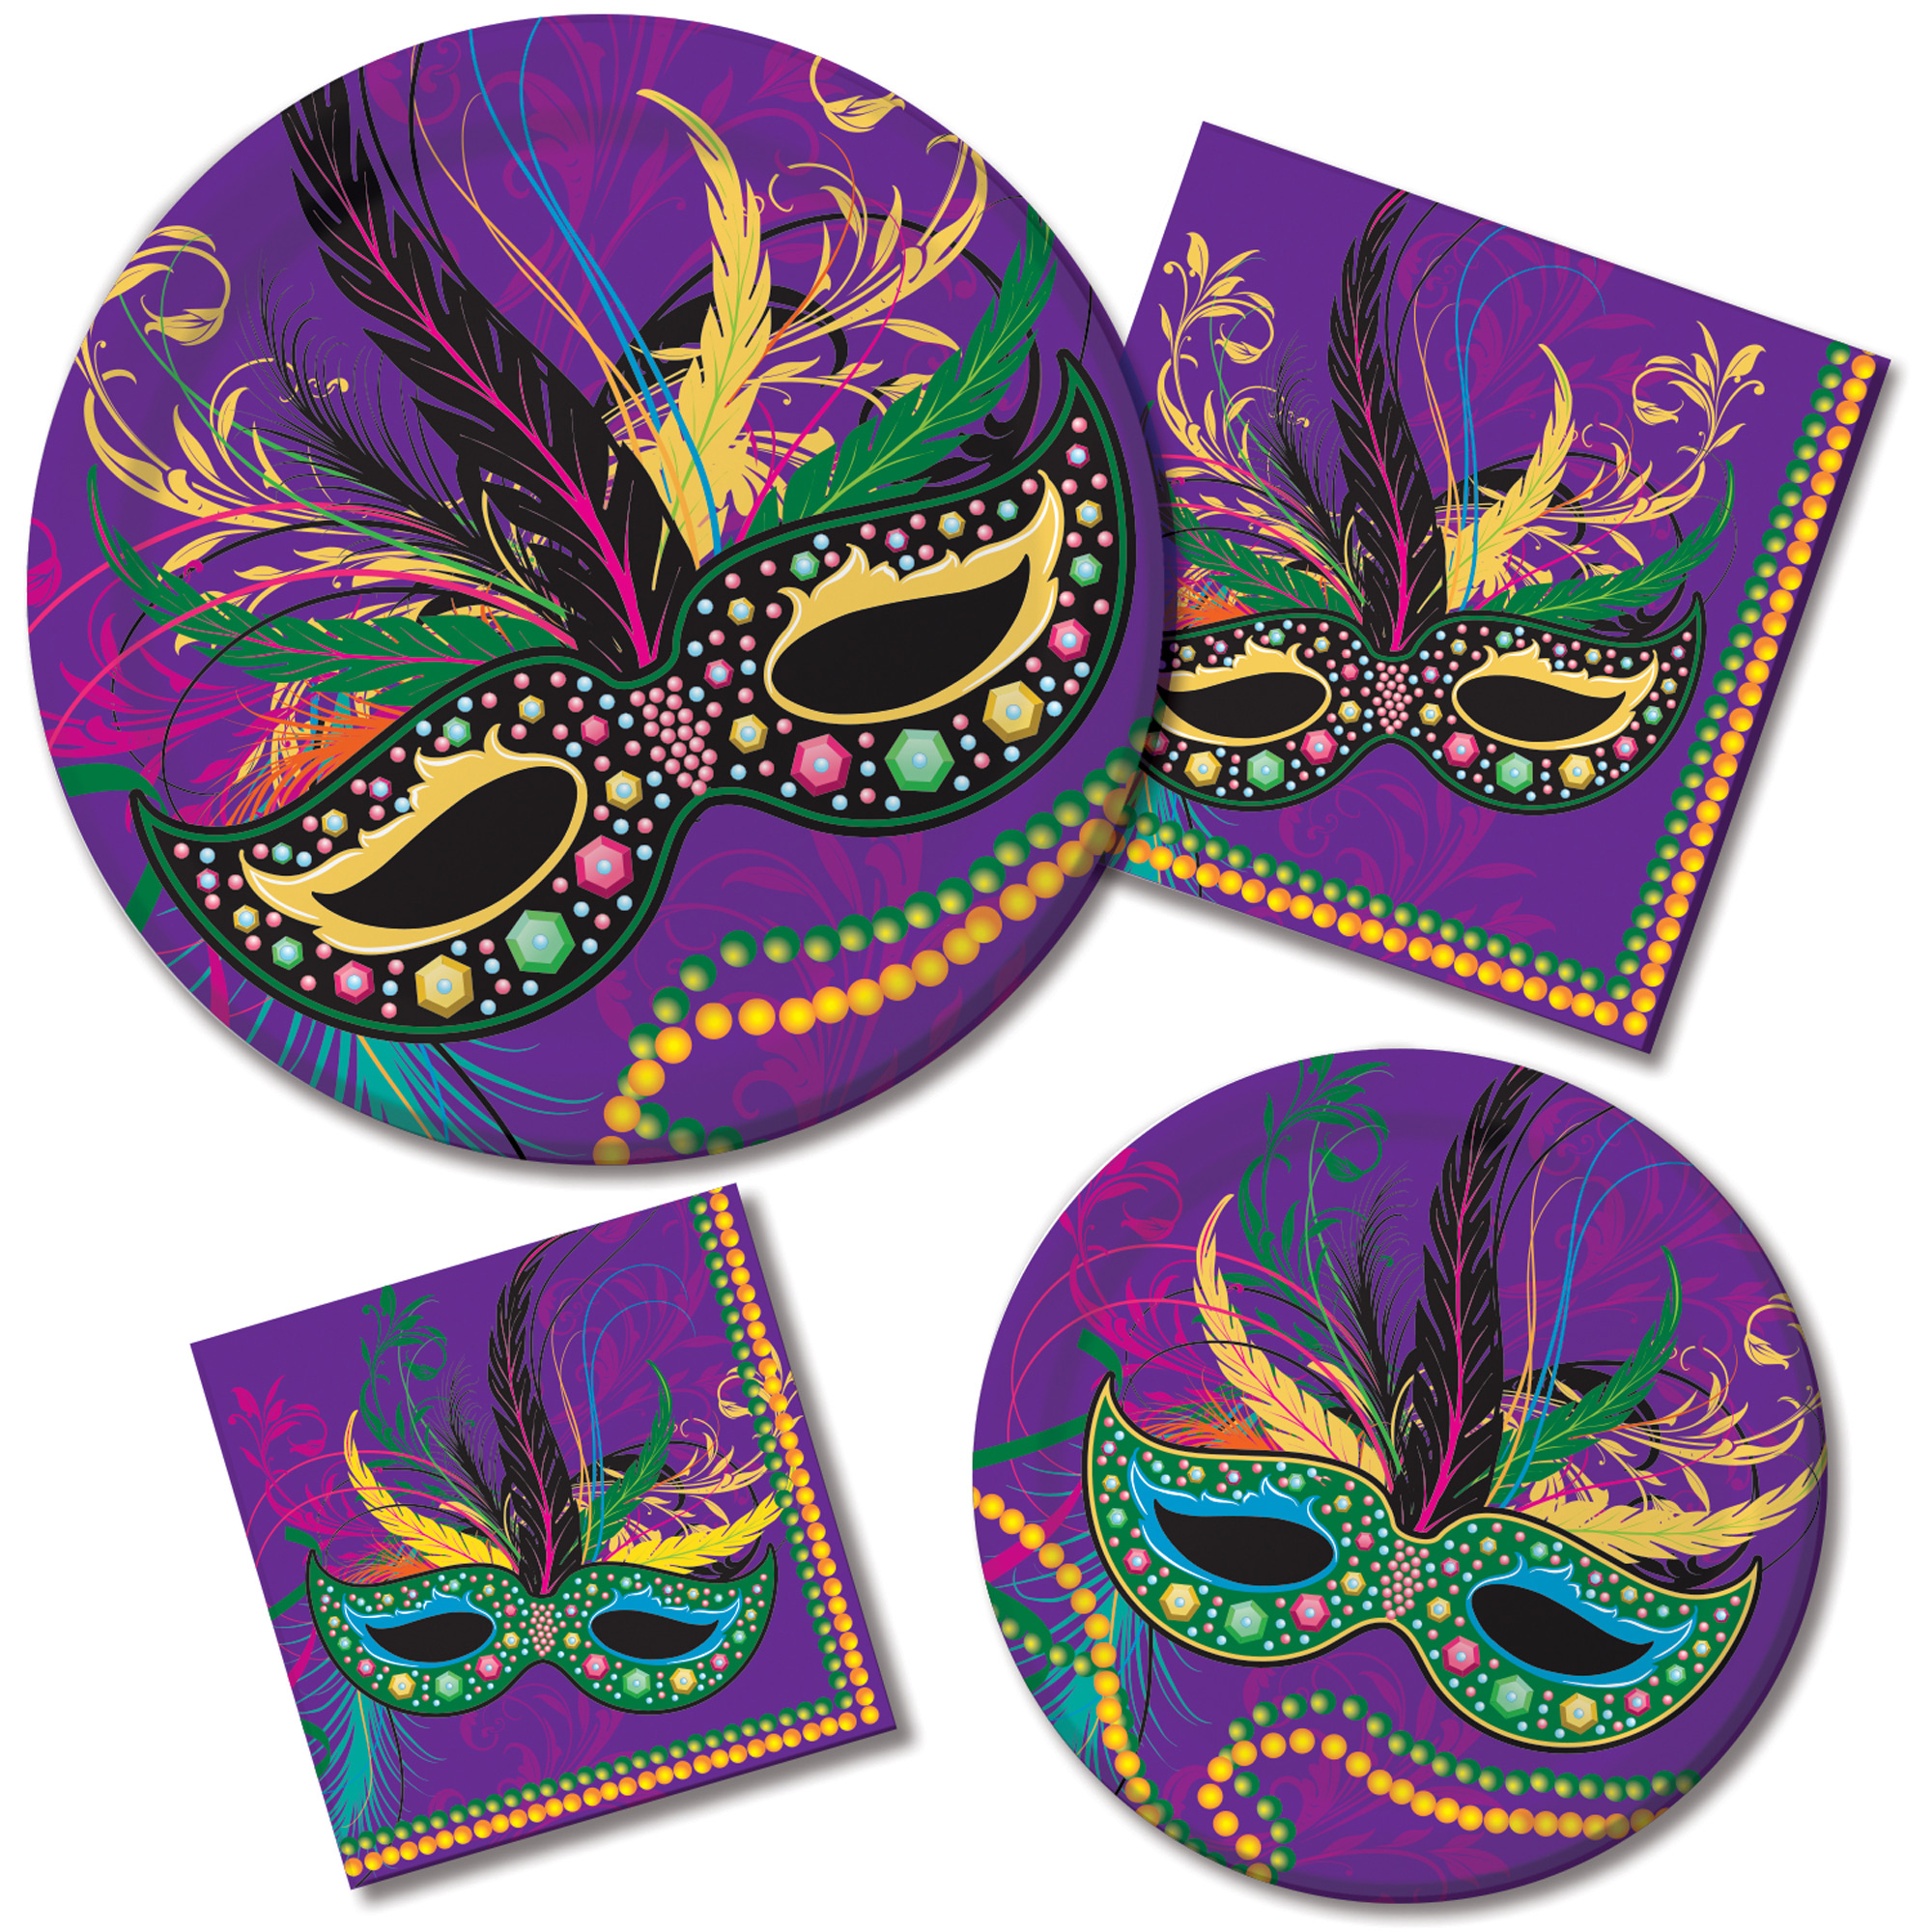 mardi-gras-masks-beauty.jpg